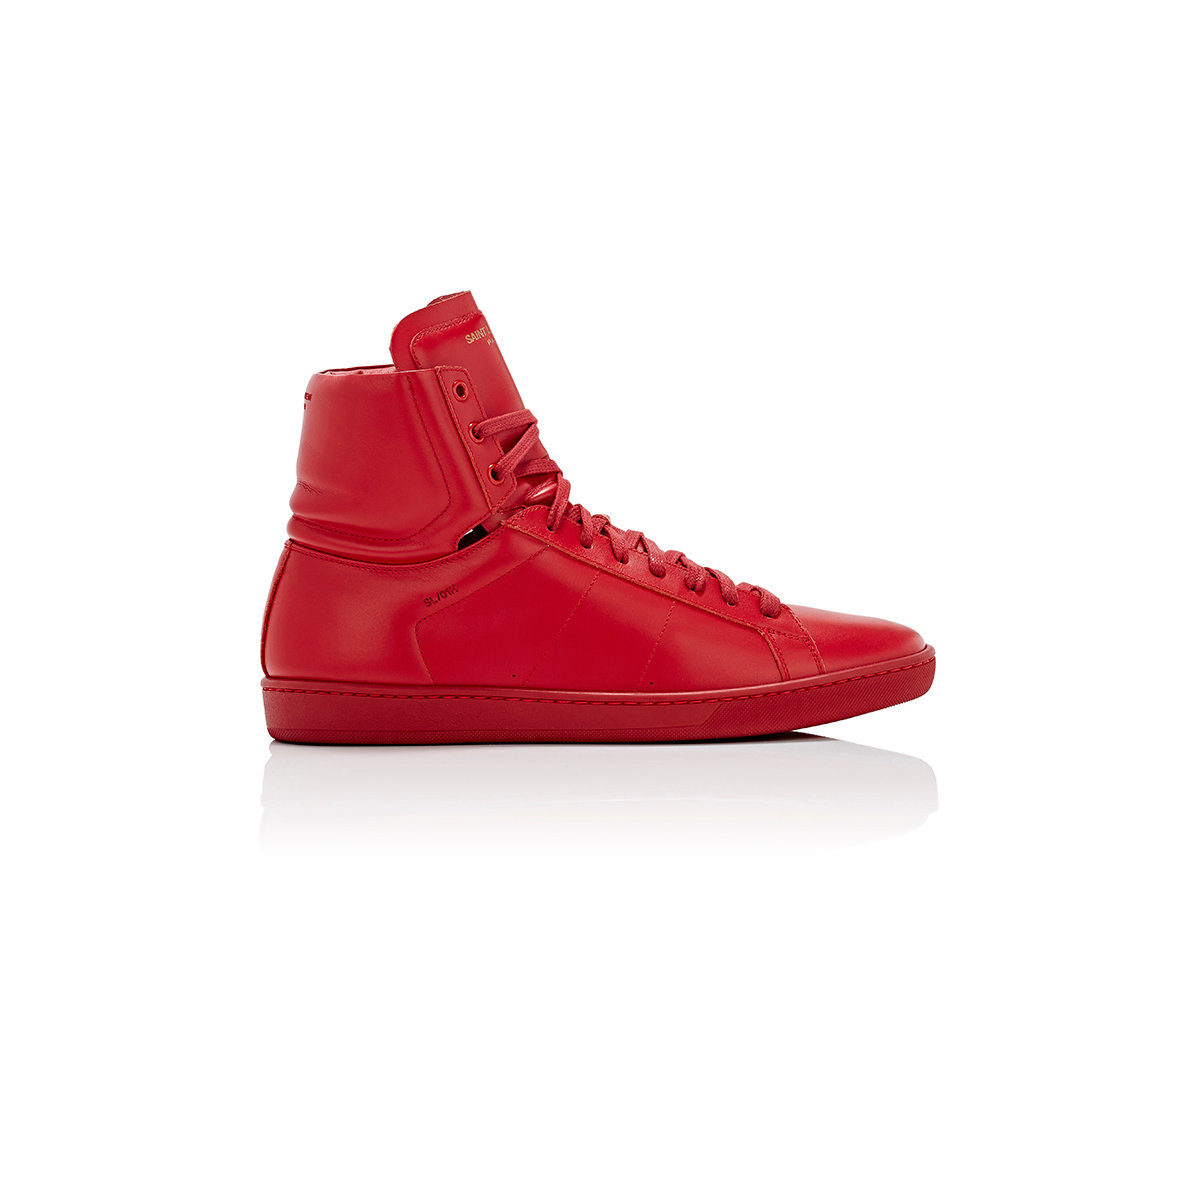 saint laurent men 39 s classic court sneakers in red for men lyst. Black Bedroom Furniture Sets. Home Design Ideas